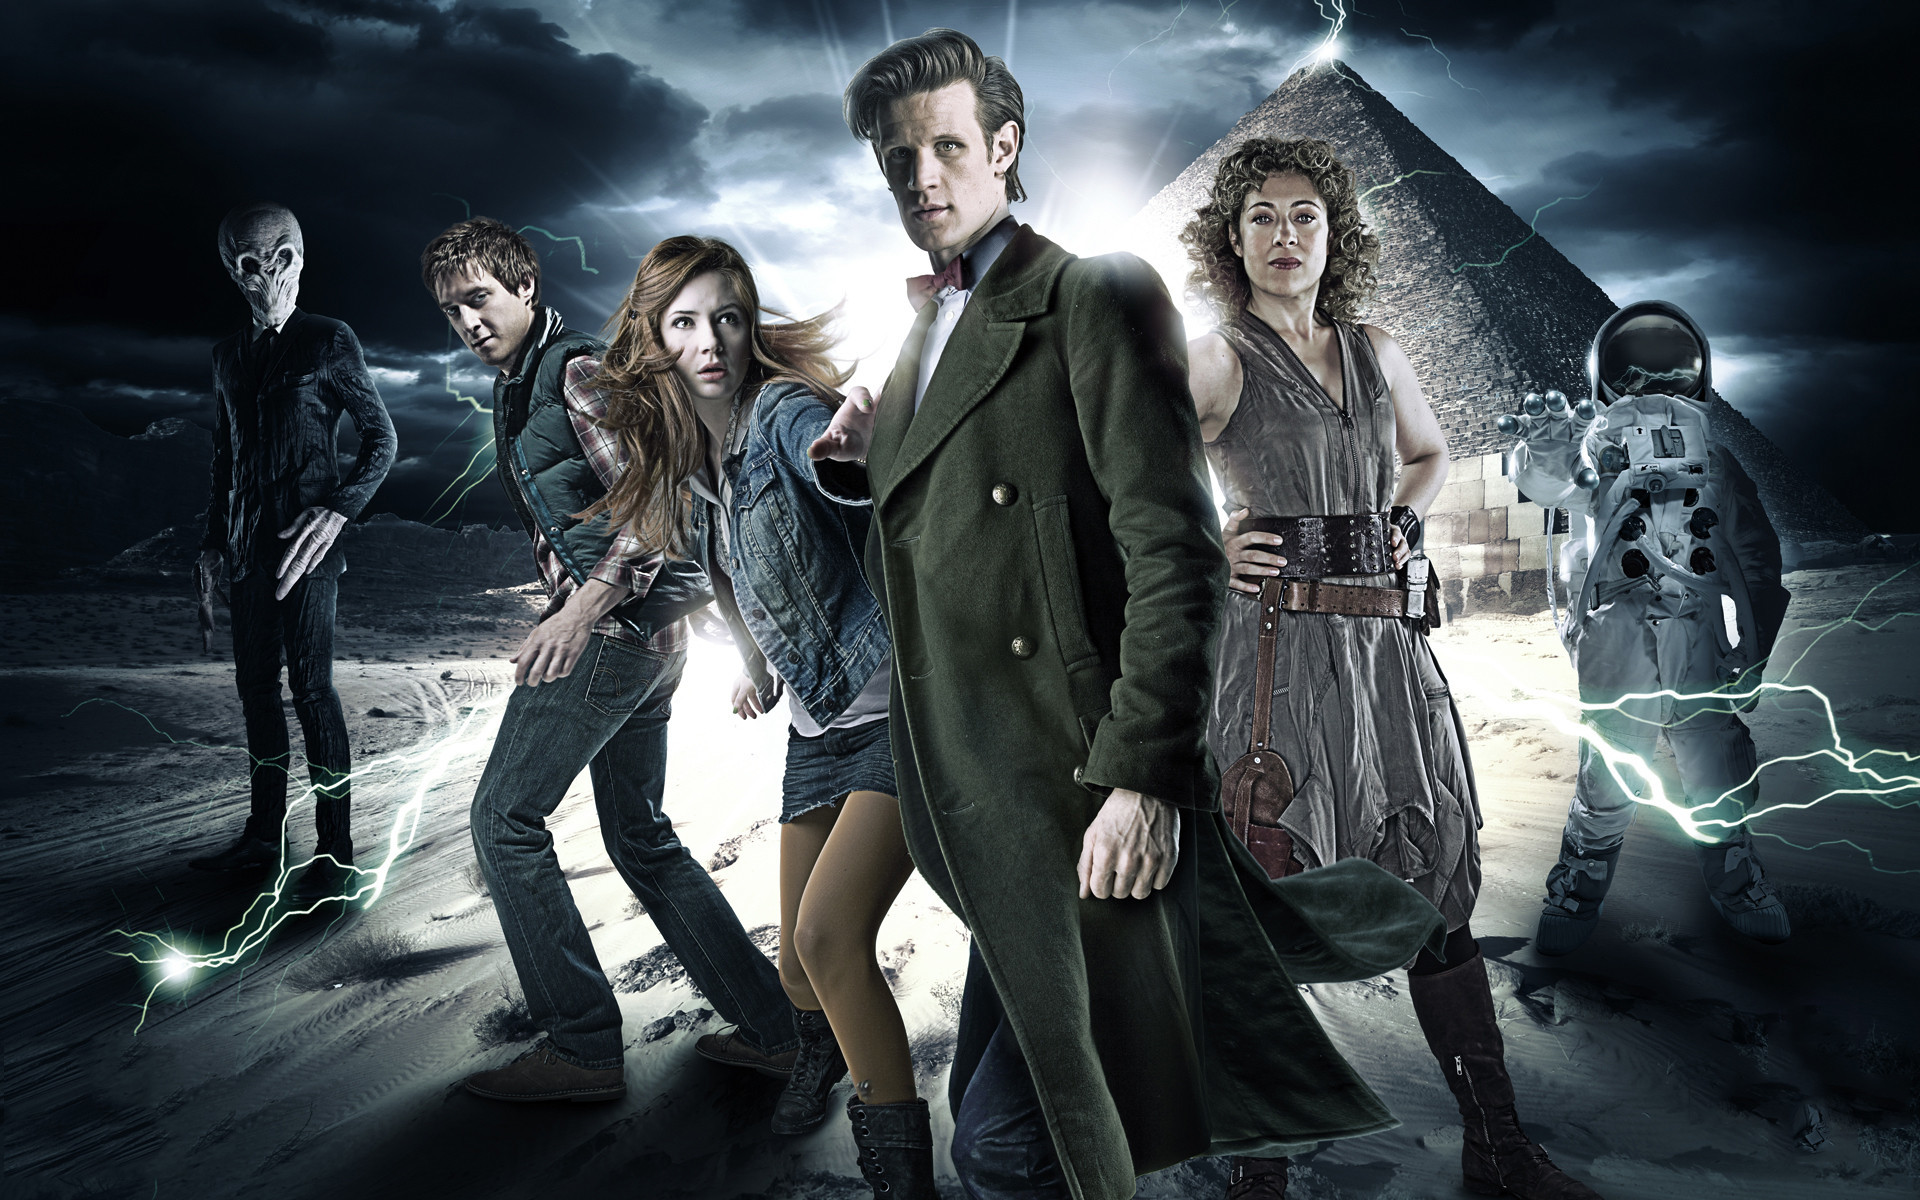 1920x1200 Doctor Who HD Wallpaper | Hintergrund |  | ID:389528 - Wallpaper  Abyss